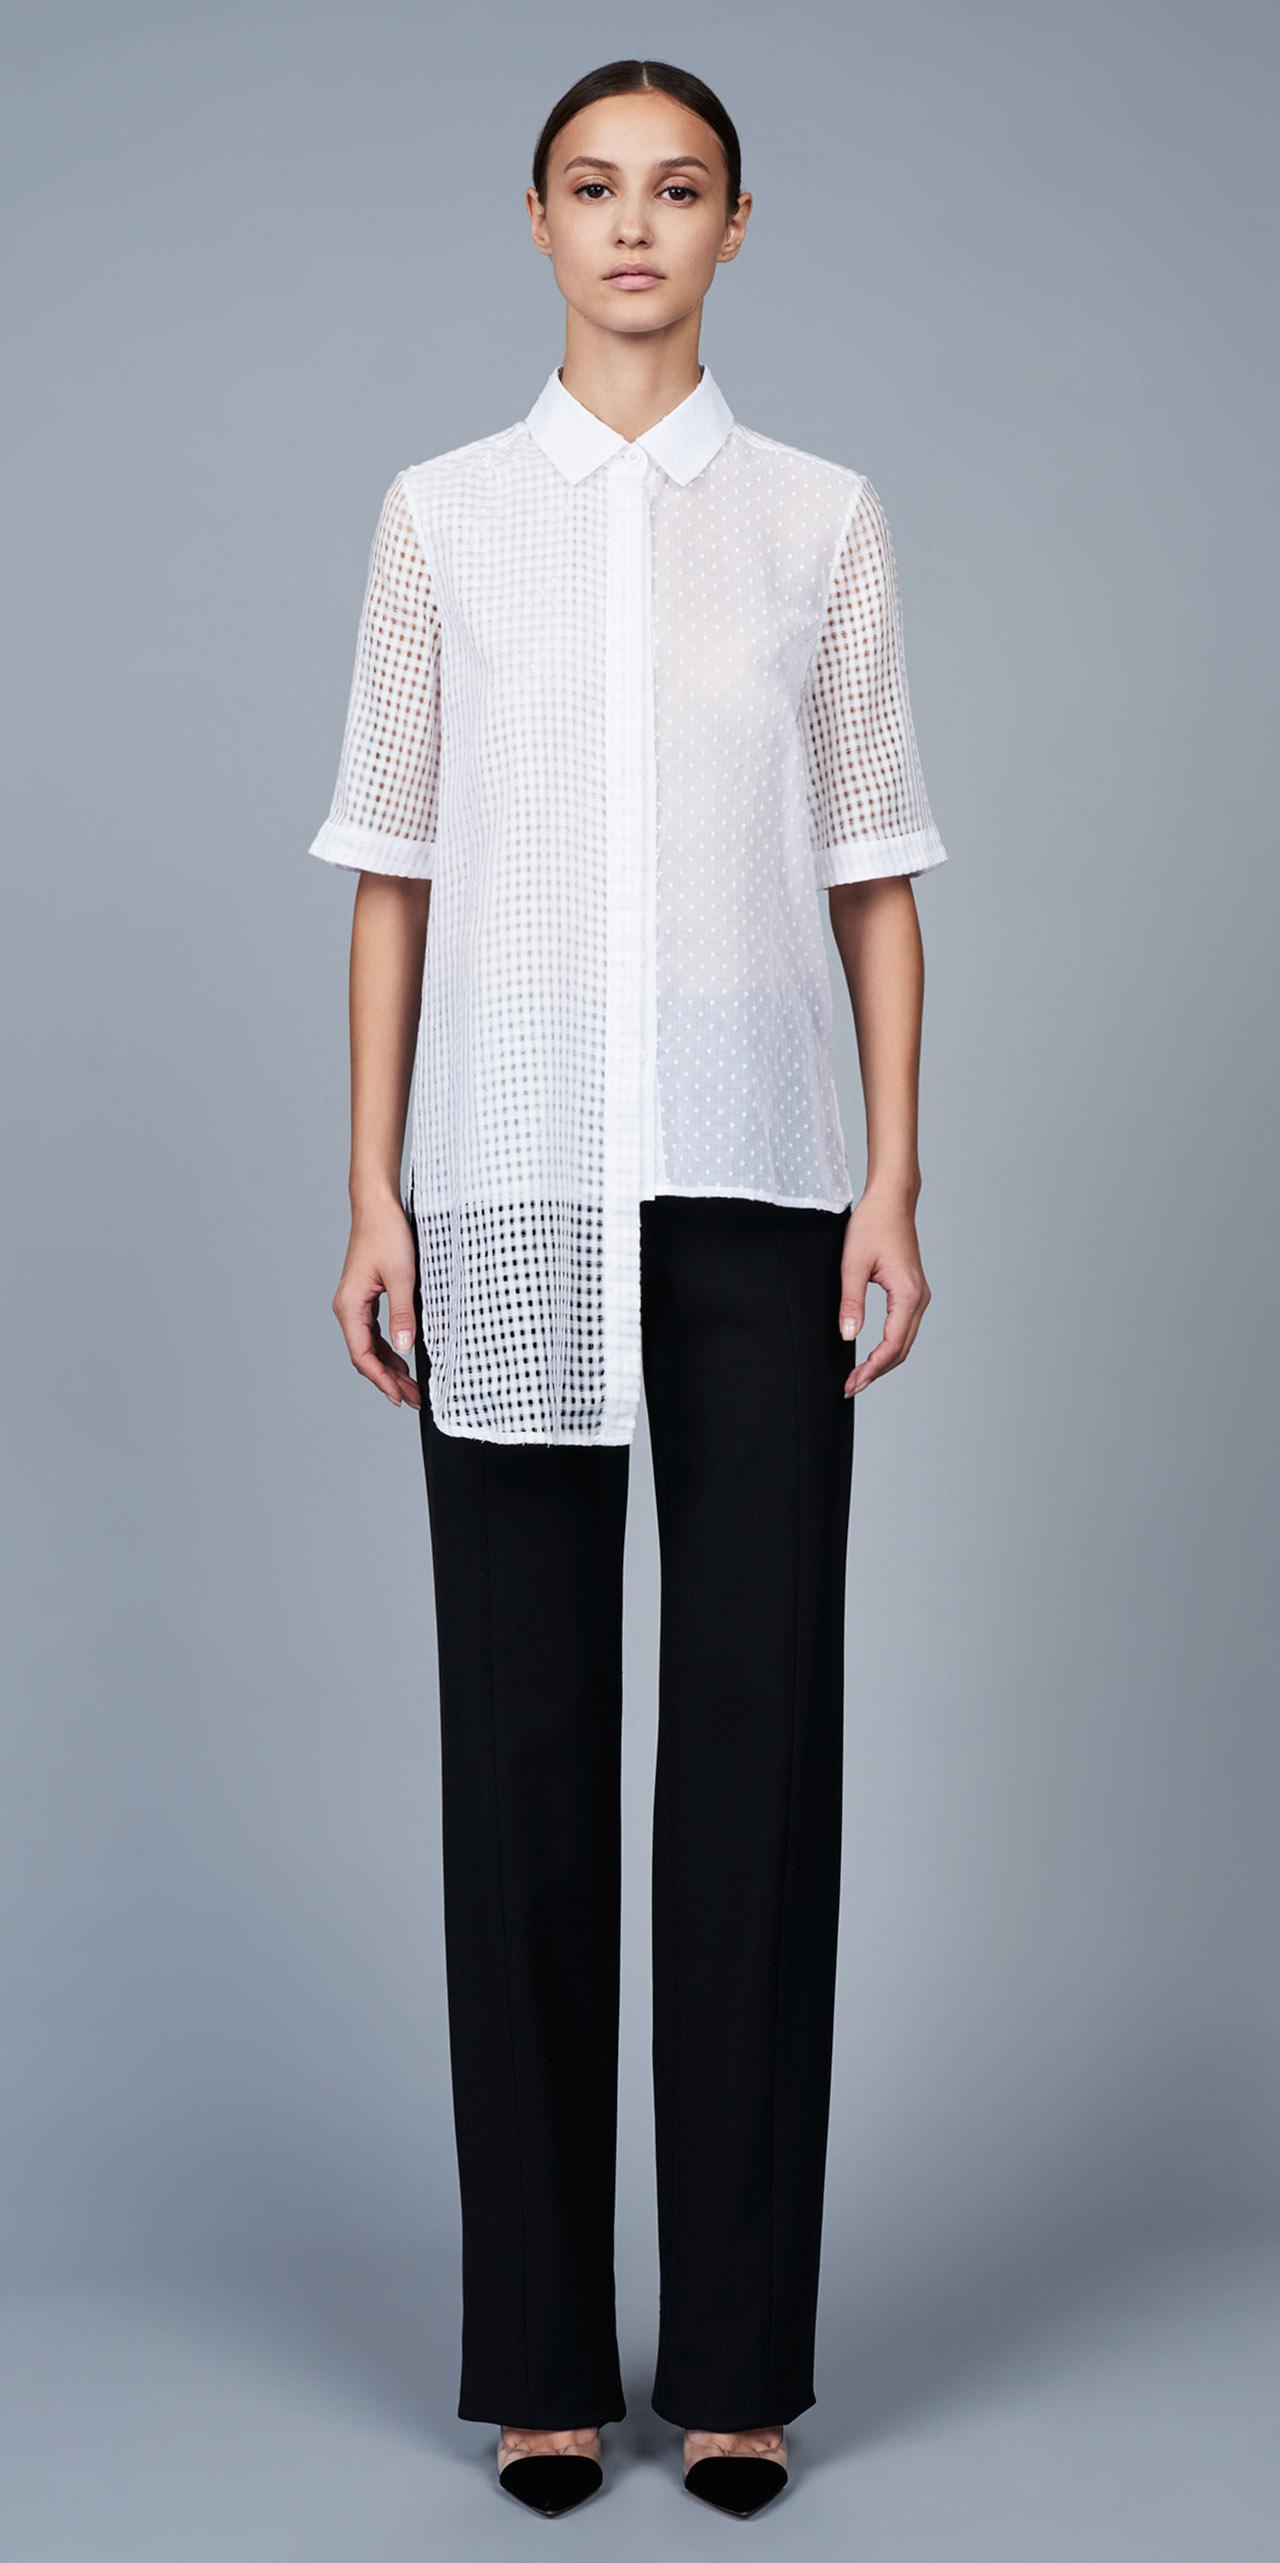 Lyst - Kimora Lee Simmons The Toto Top in White